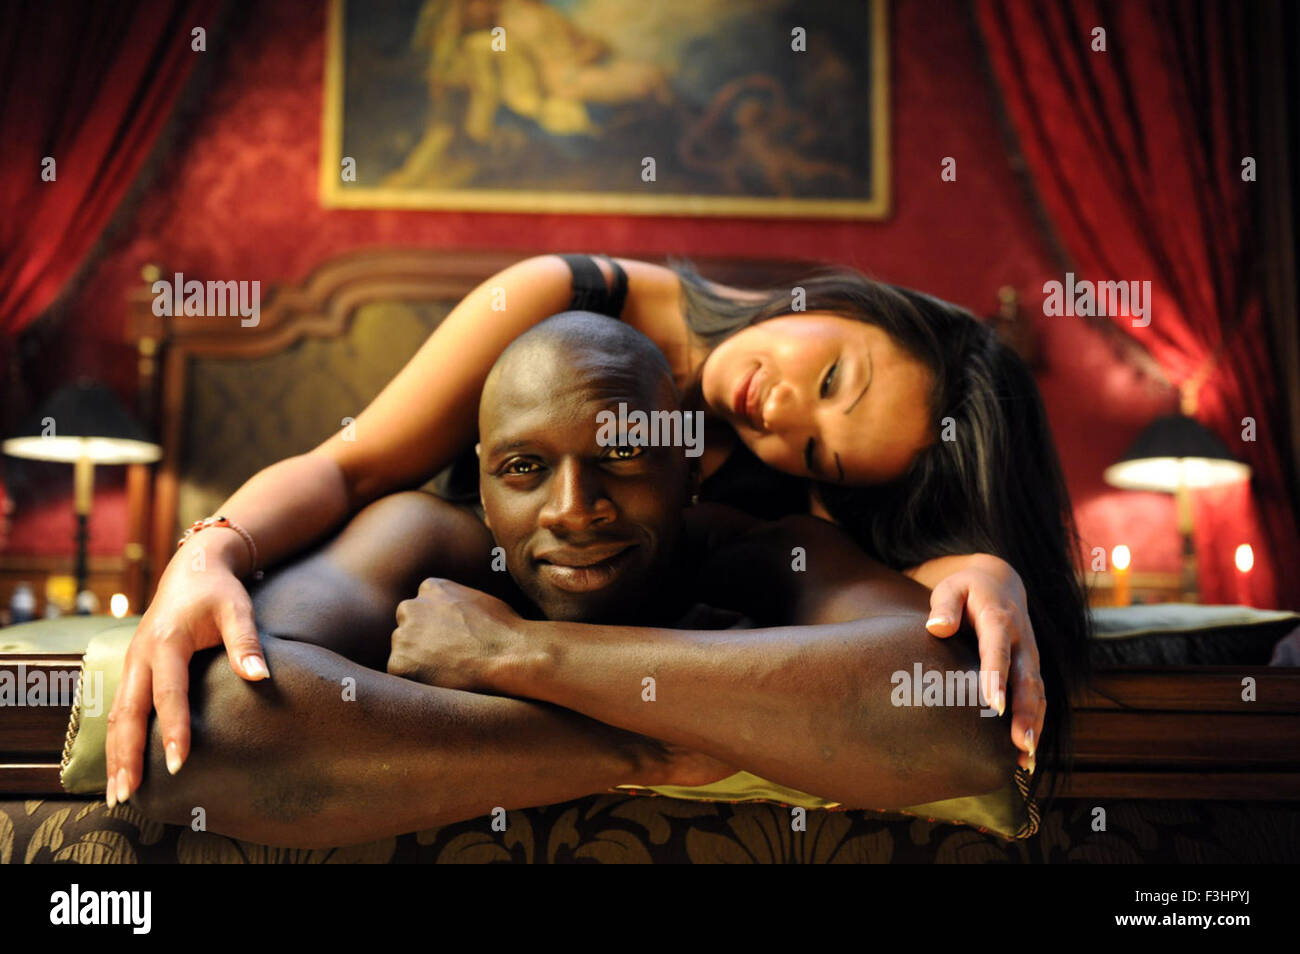 The Intouchables, UK: Untouchable) is a 2011 French comedy-drama film directed by Olivier Nakache & Éric - Stock Image